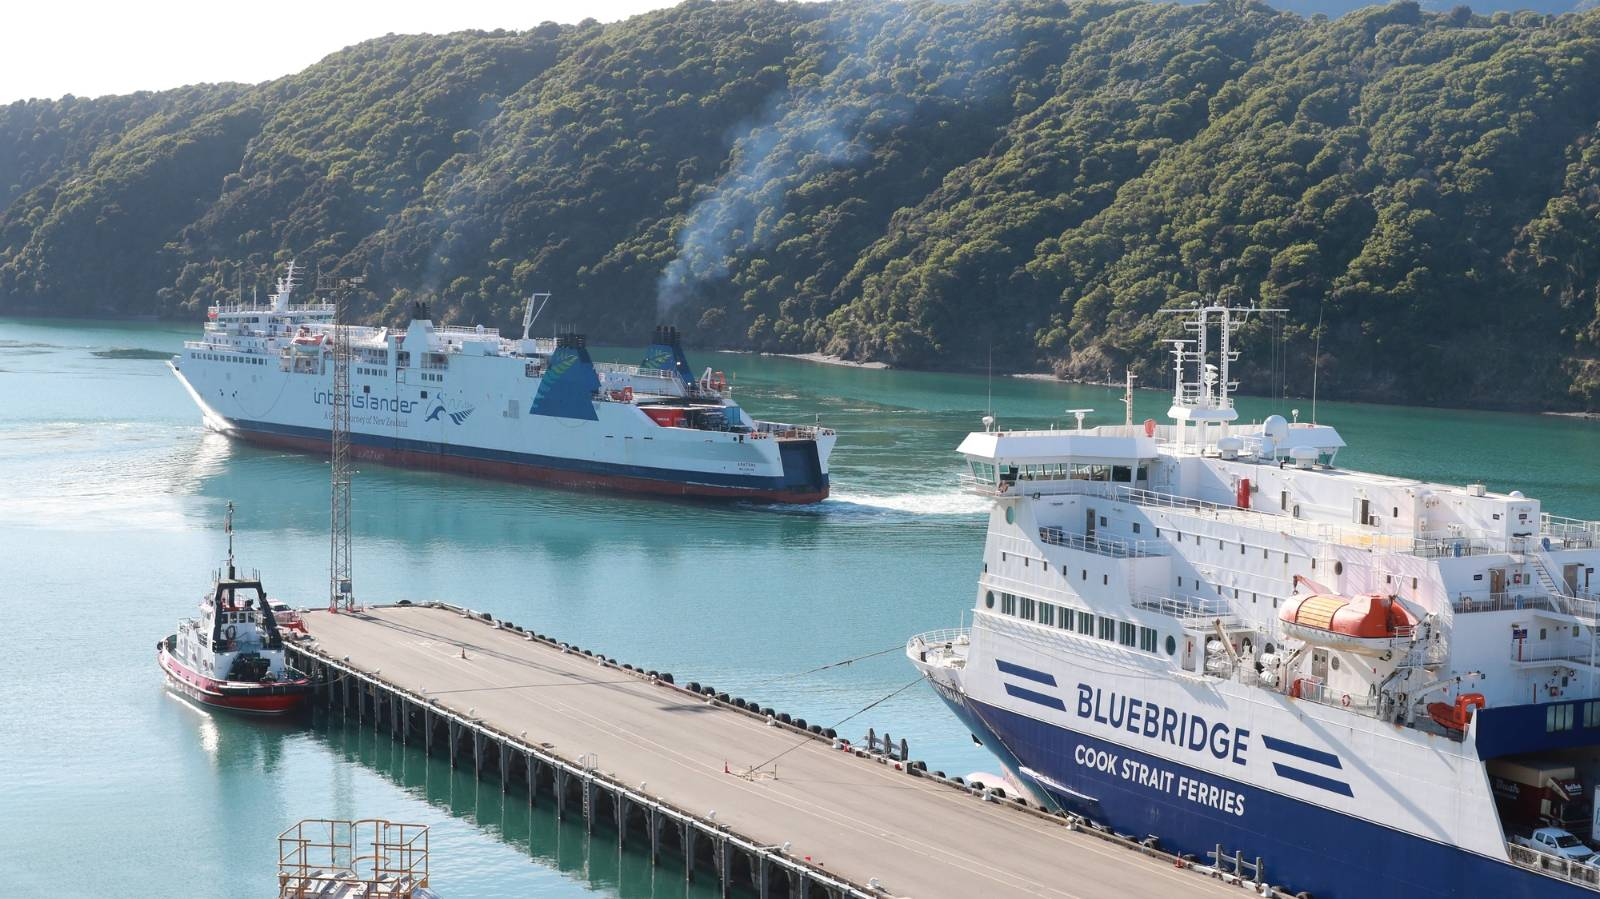 Call for pre-departure Covid tests for travel to South Island